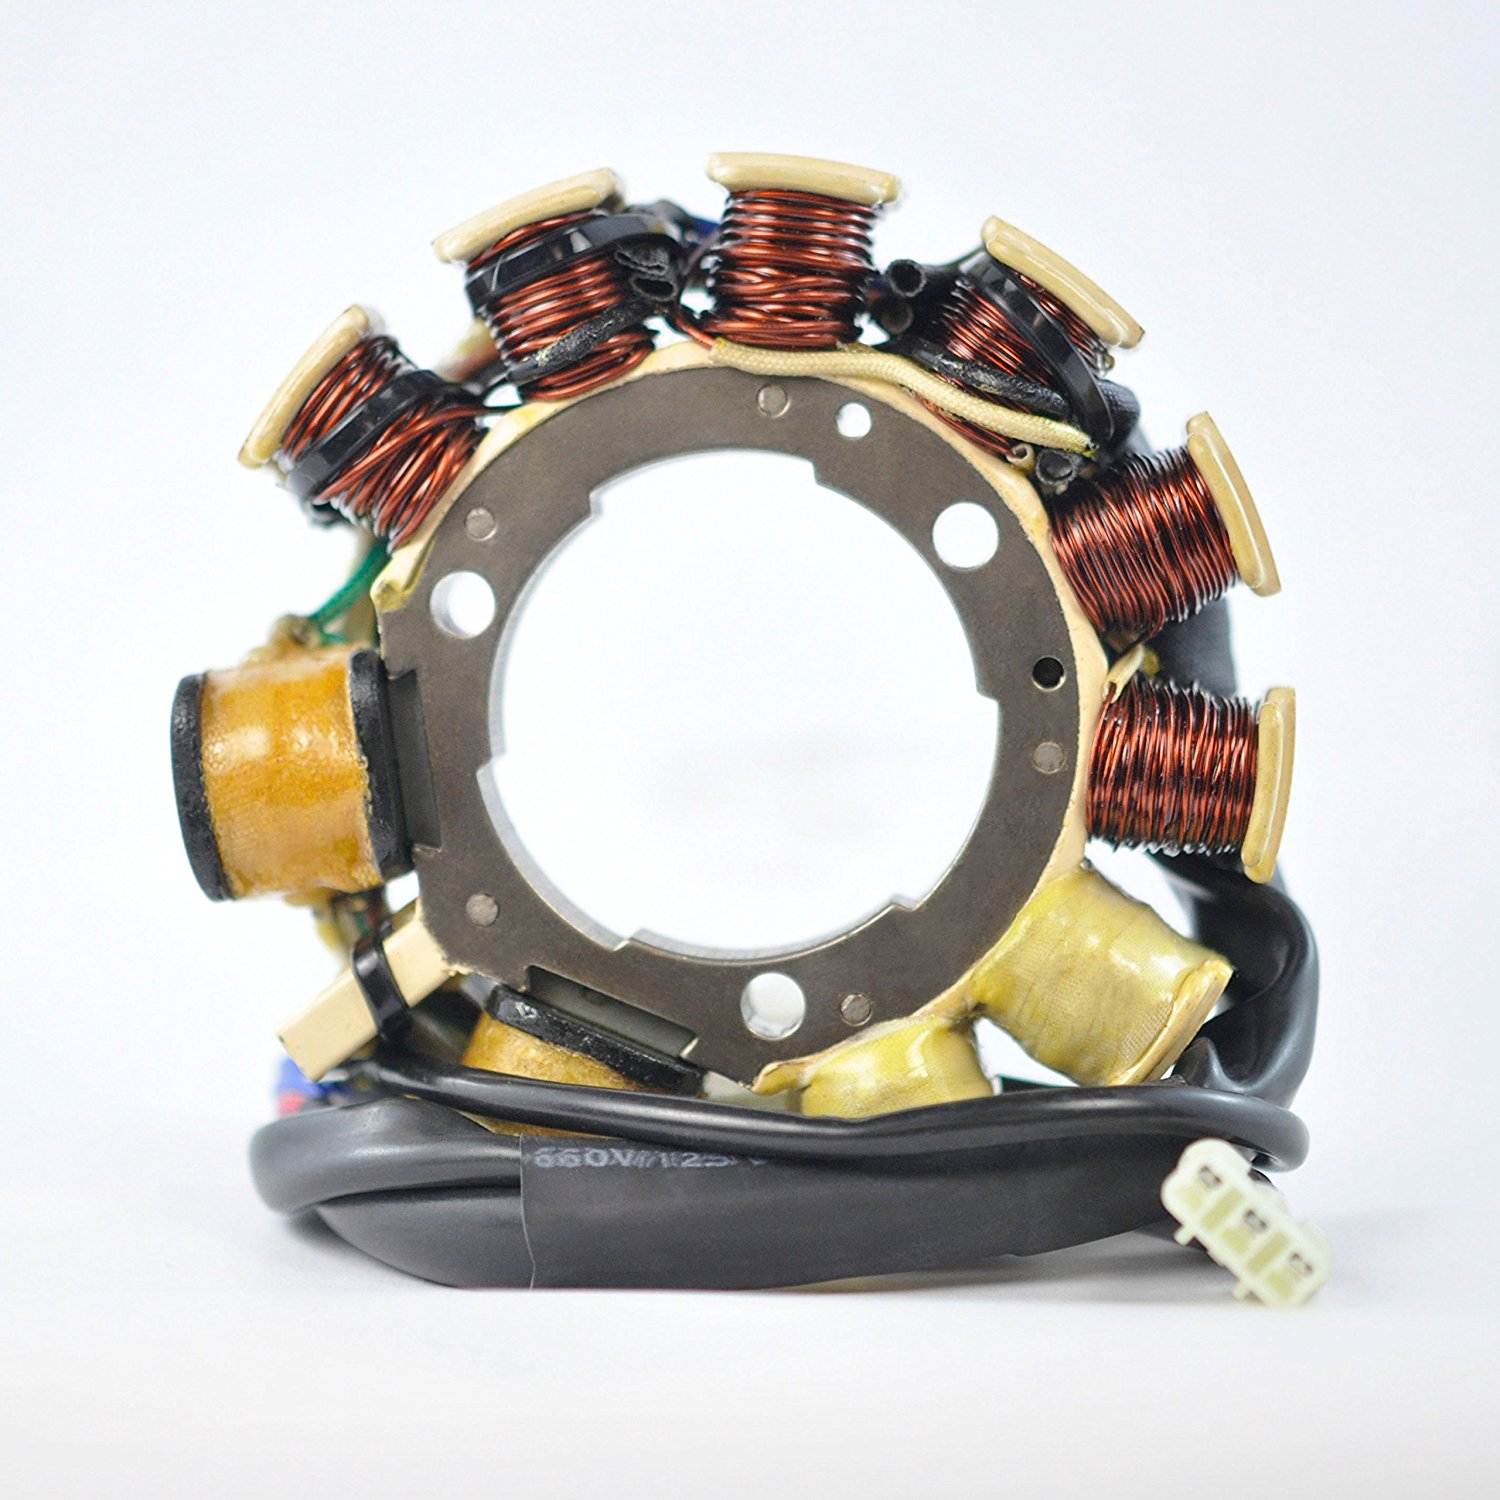 Stator For Arctic Cat EXT 580 Pantera 580 Powder Special 500 580 600 ZL 500 580 600 ZR 500 580 600 EFI L/C 1997 1998 1999 2000 2001 OEM Repl.# 3005-080